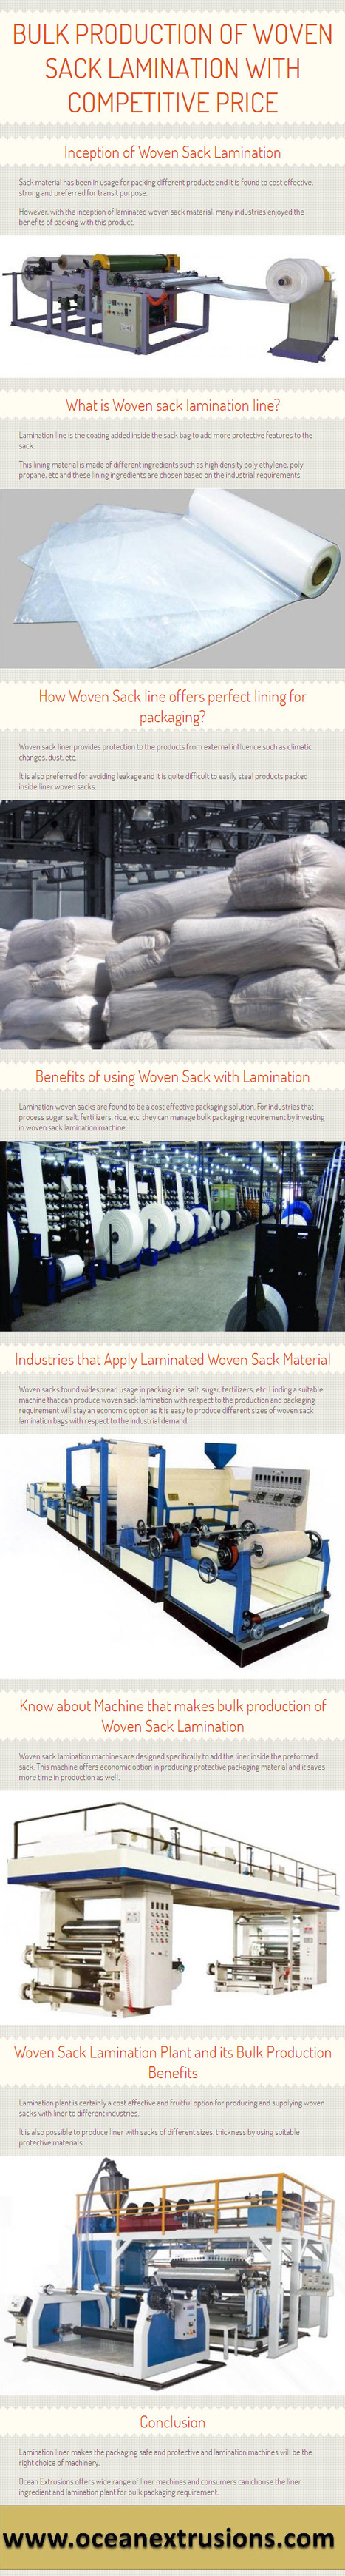 Bulk Production of Woven Sack Lamination with Competitive Price | oceanextrusions | Scoop.it